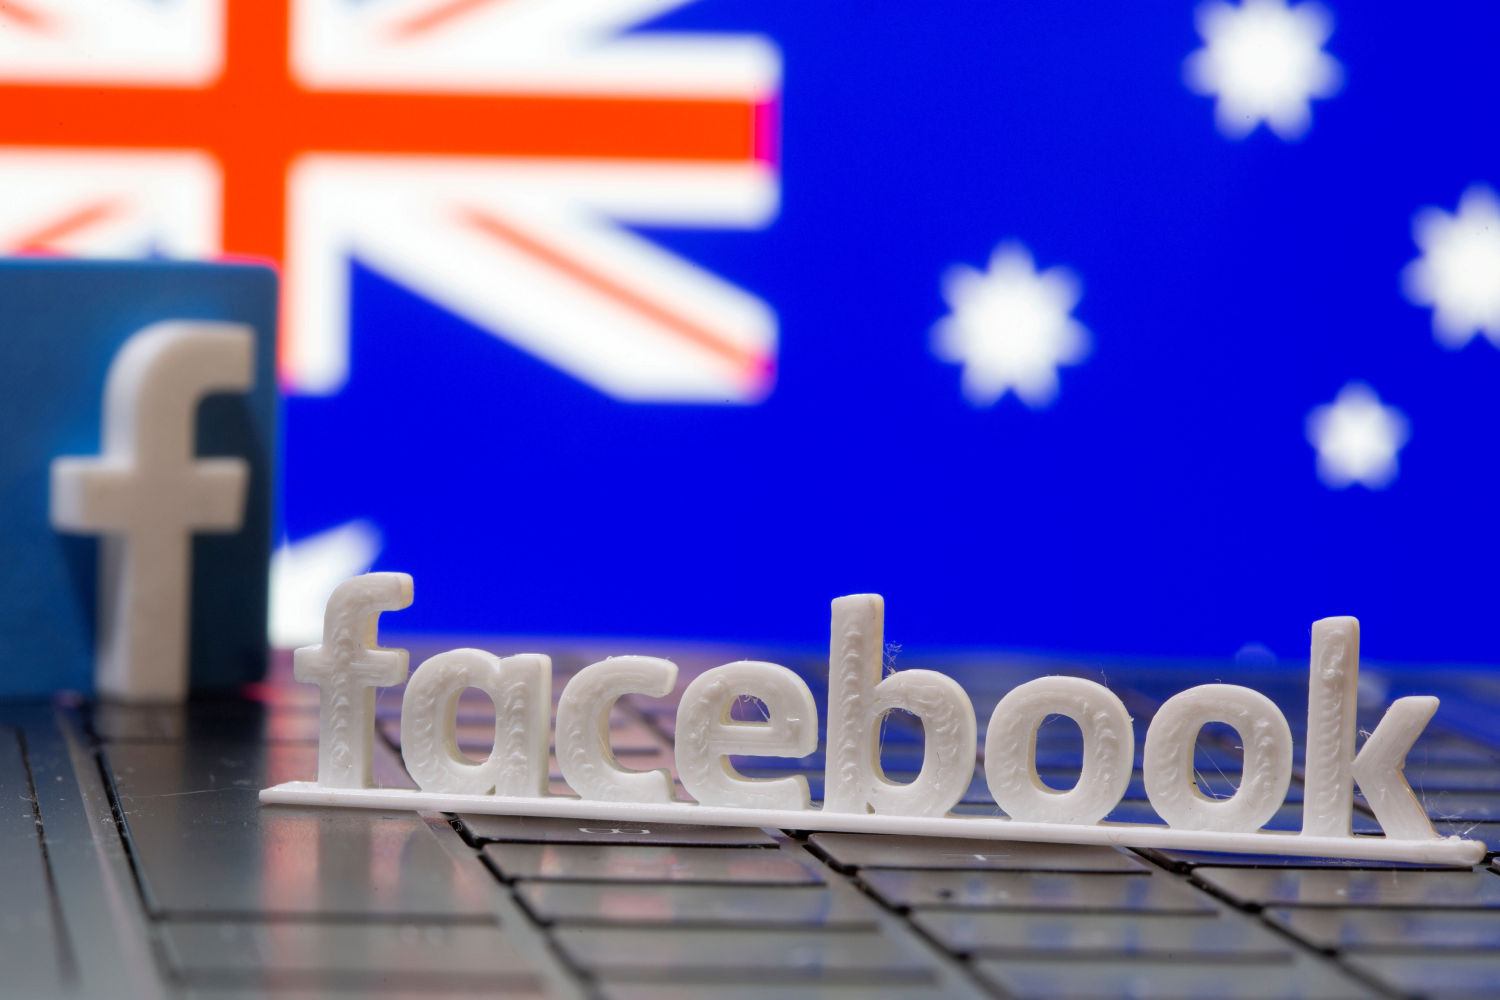 Australia enacts landmark law to make tech firms pay for news